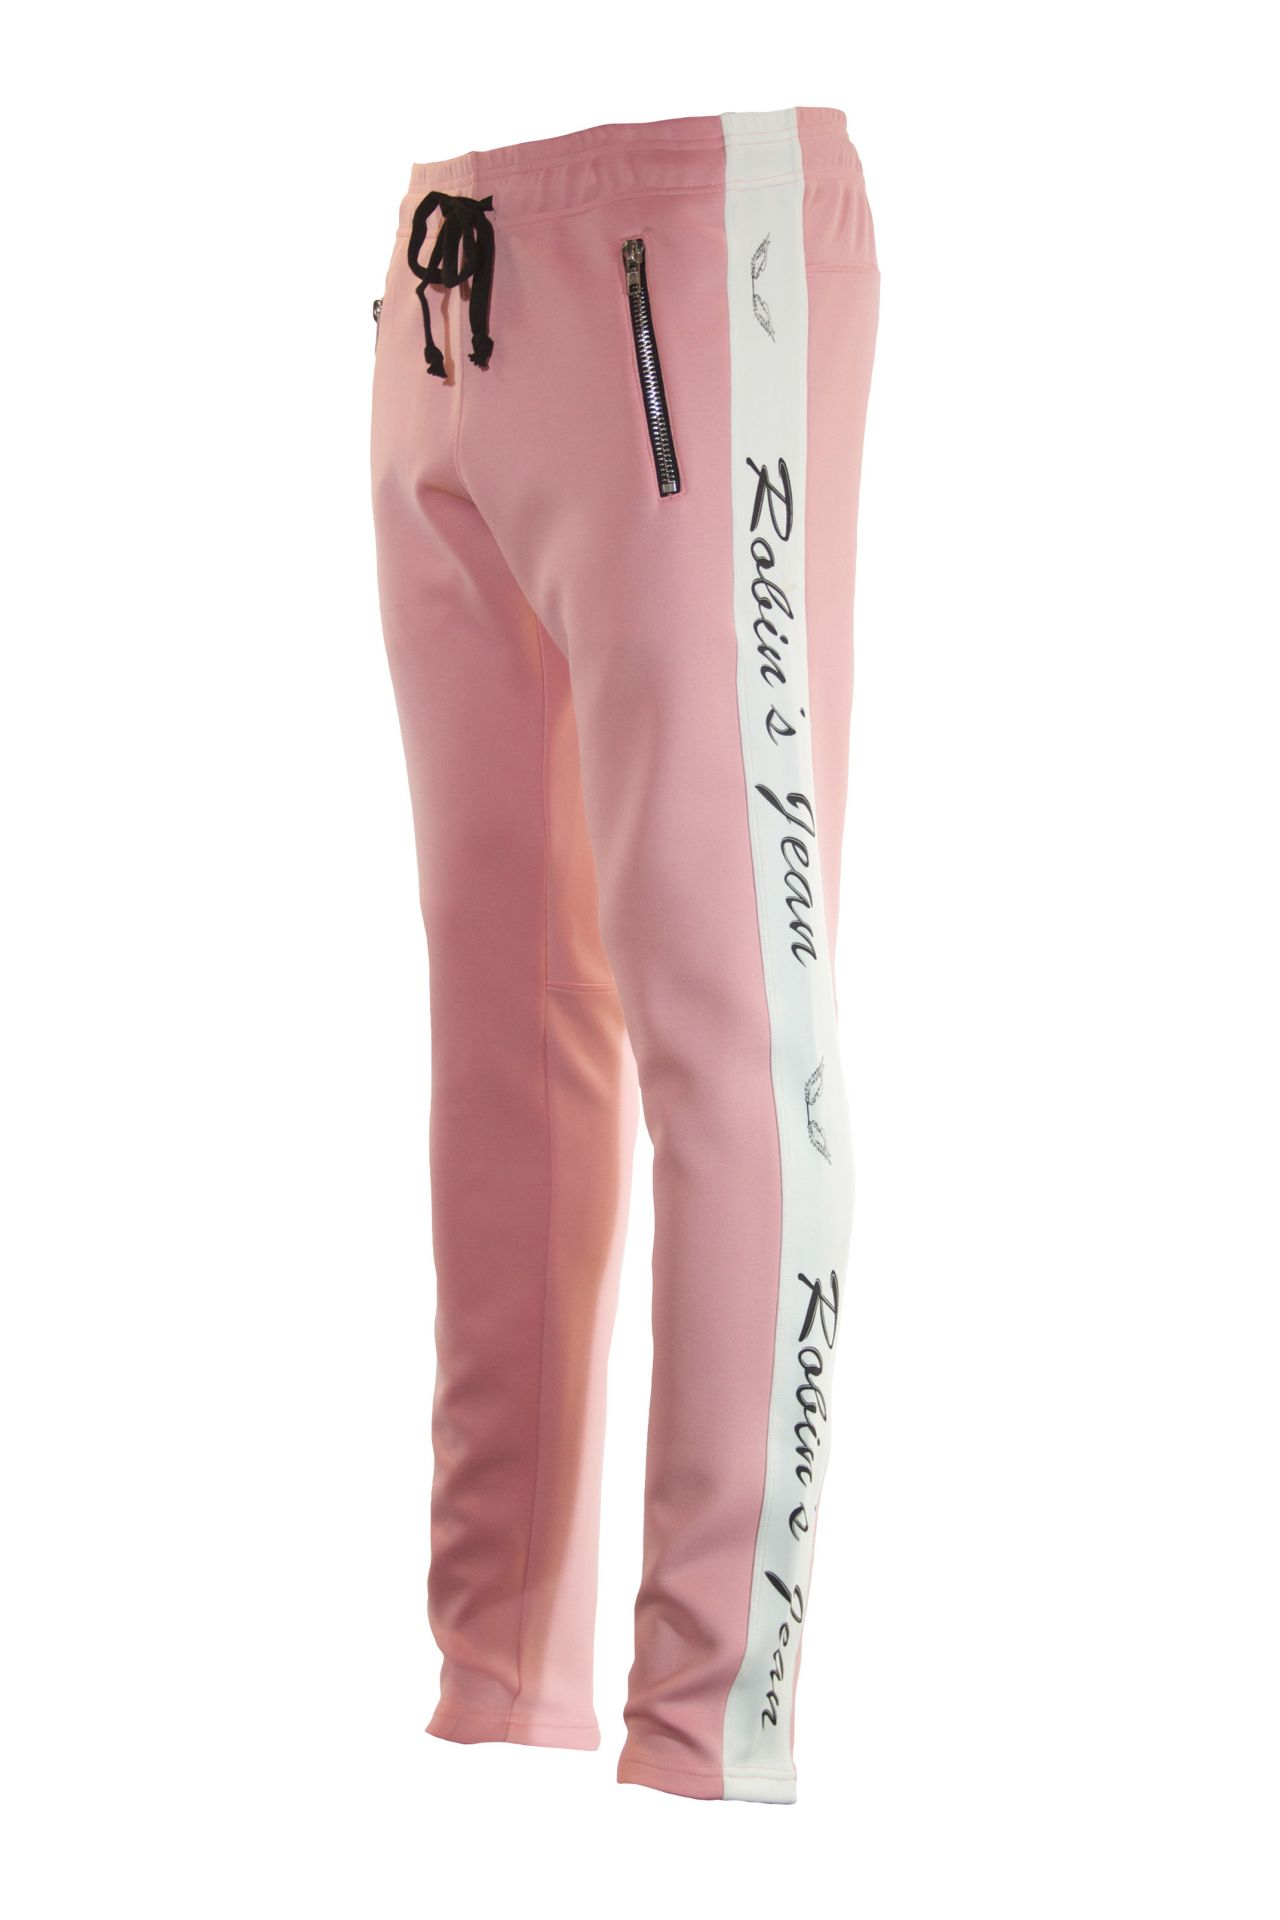 ROBIN TEAM JOGGER IN PINK